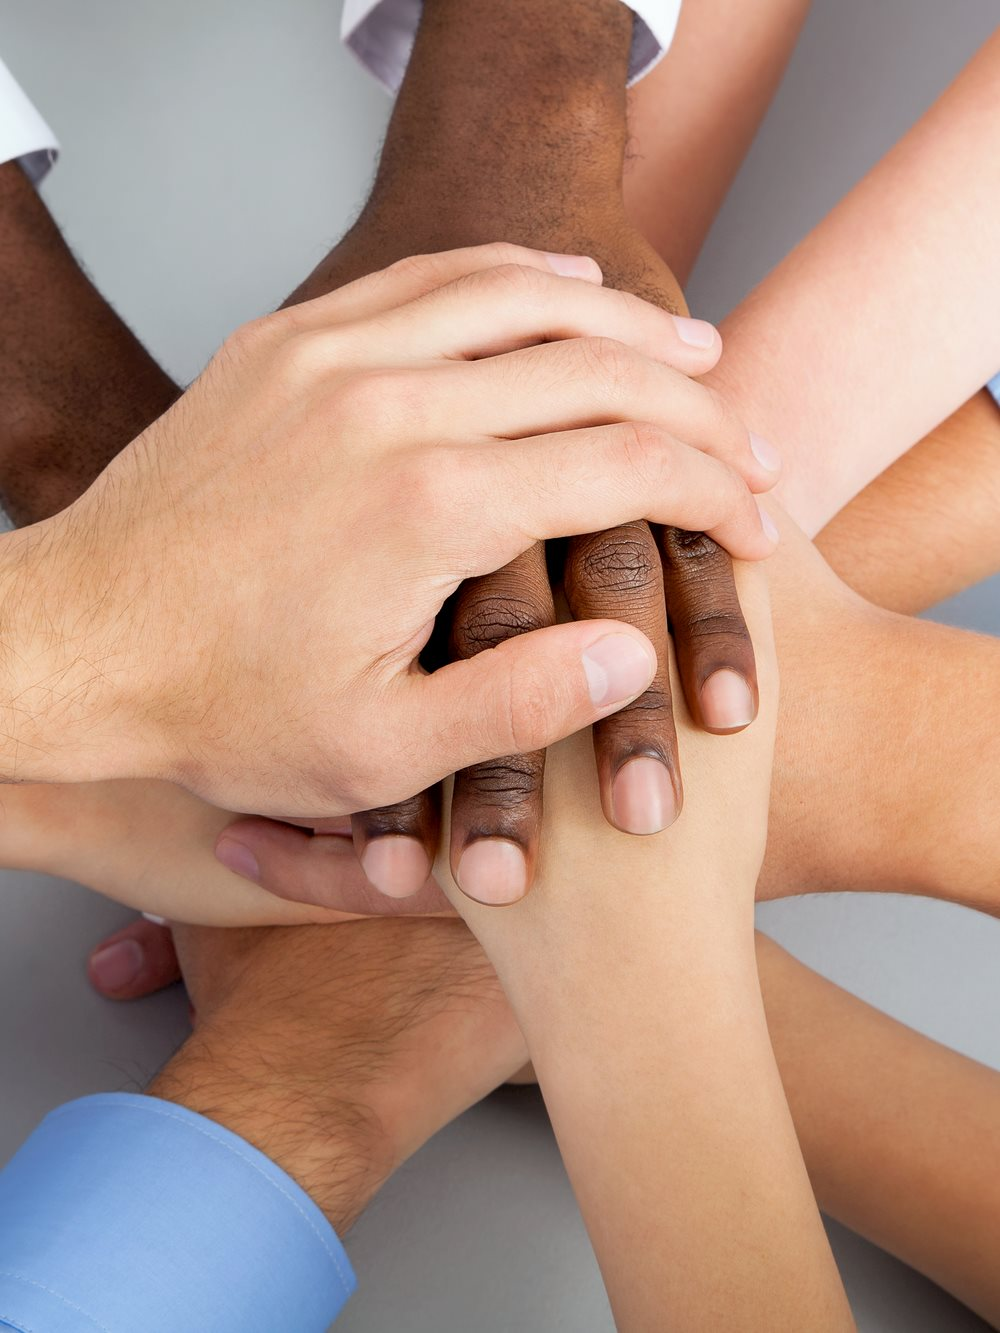 International Business Team Showing Unity With Their Hands Together.jpg